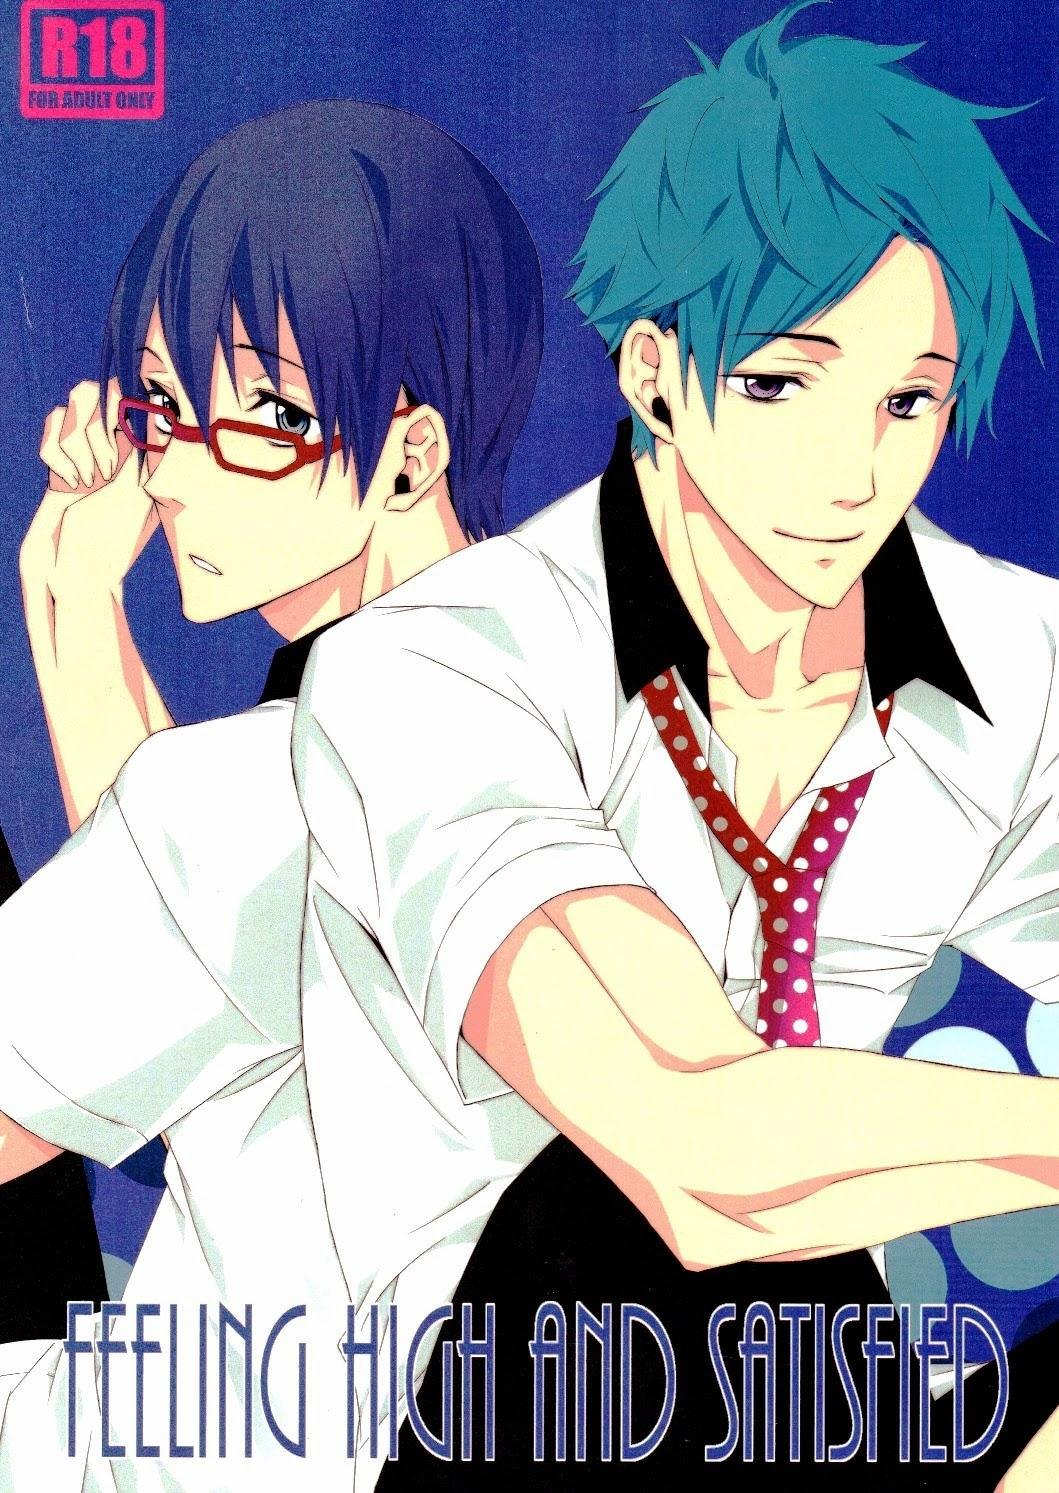 【Free!BL漫画】怜×遙☆FEELING HIGH AND SATISFIED【ボーイズラブ同人誌】